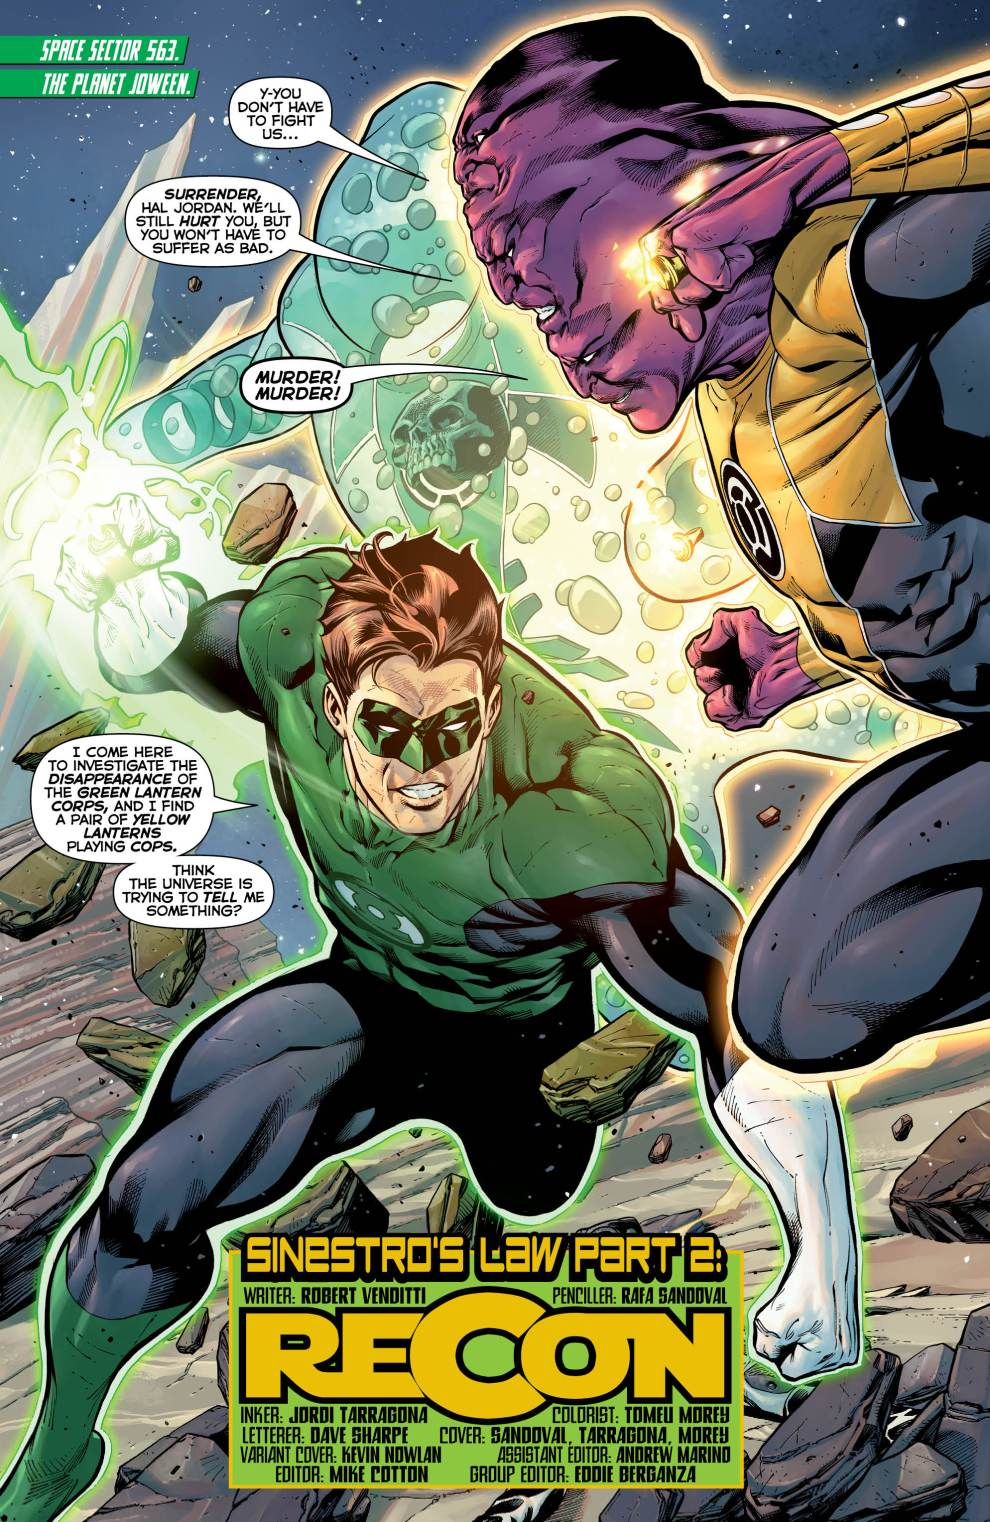 Images from Hal Jordan and the Green Lantern Corps #2 from DC Comics.